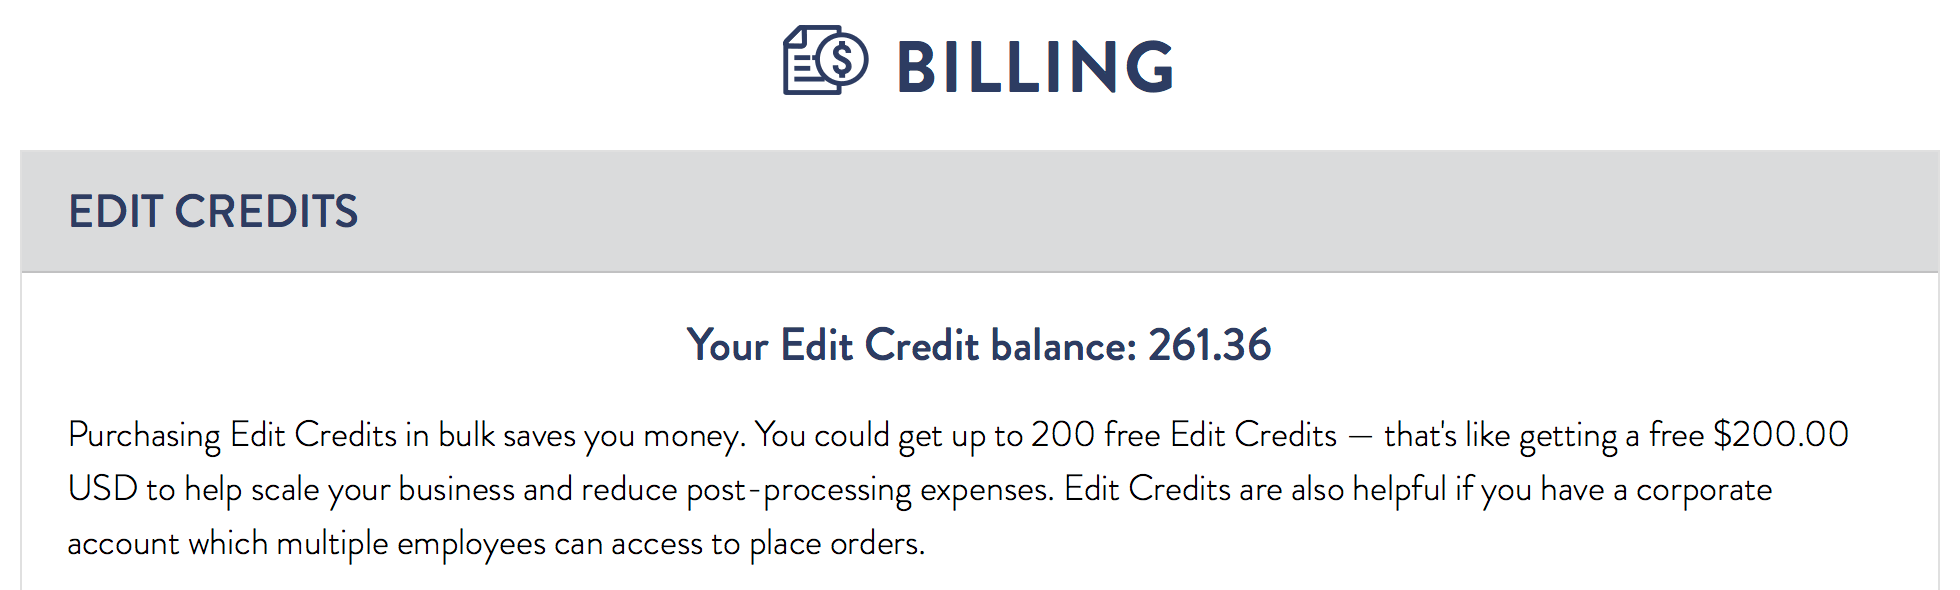 Click on BILLING in the main menu. Your Edit Credits balance will display at the top